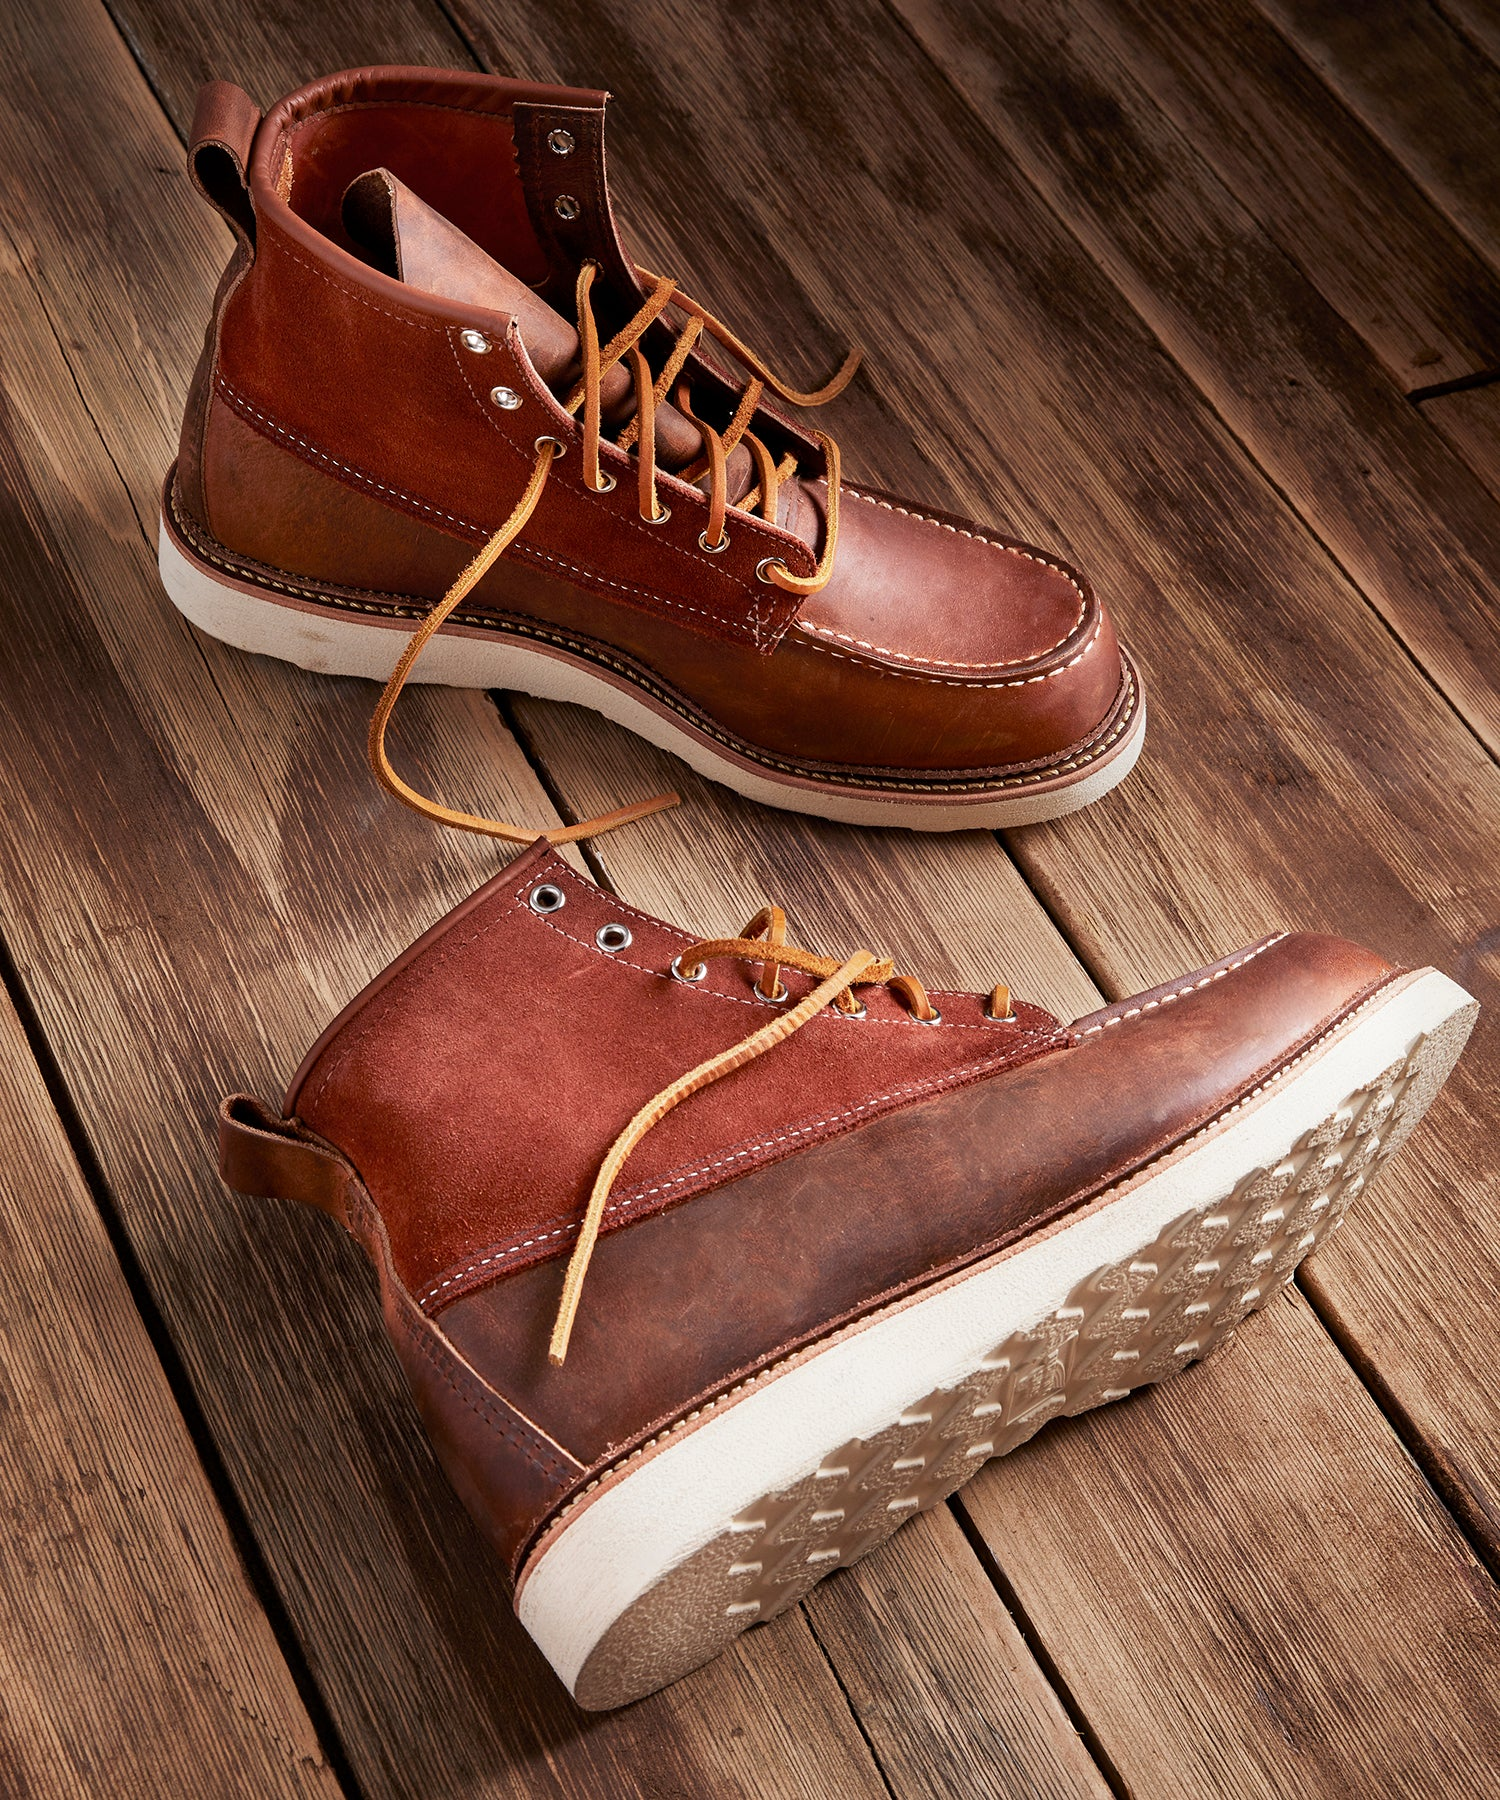 Exclusive Red Wing X Todd Snyder Moc